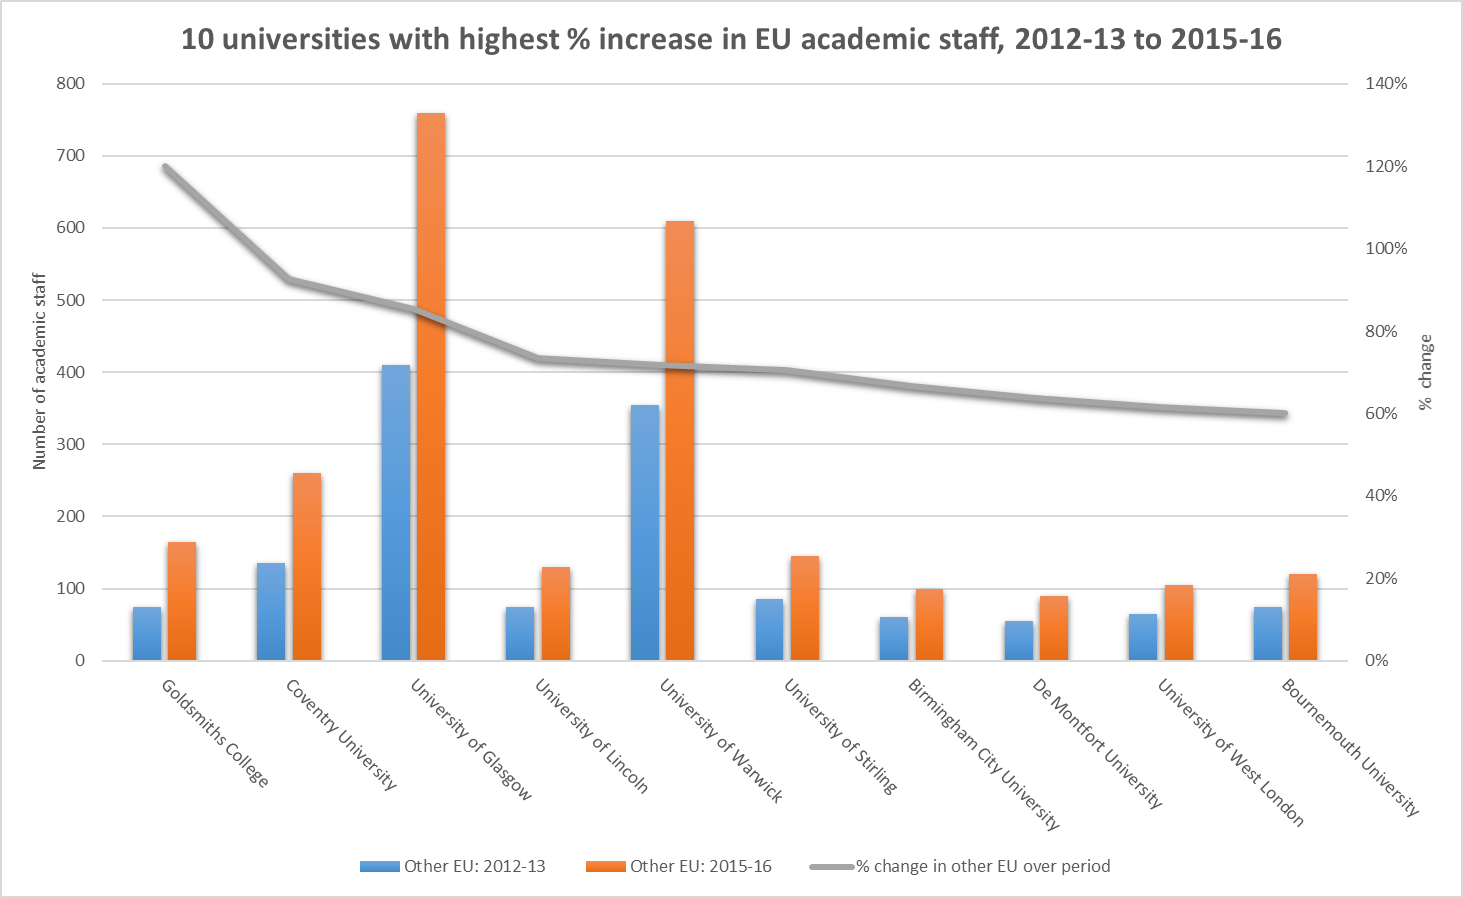 10 universities with highest % increase in EU academic staff, 2012-13 to 2015-16